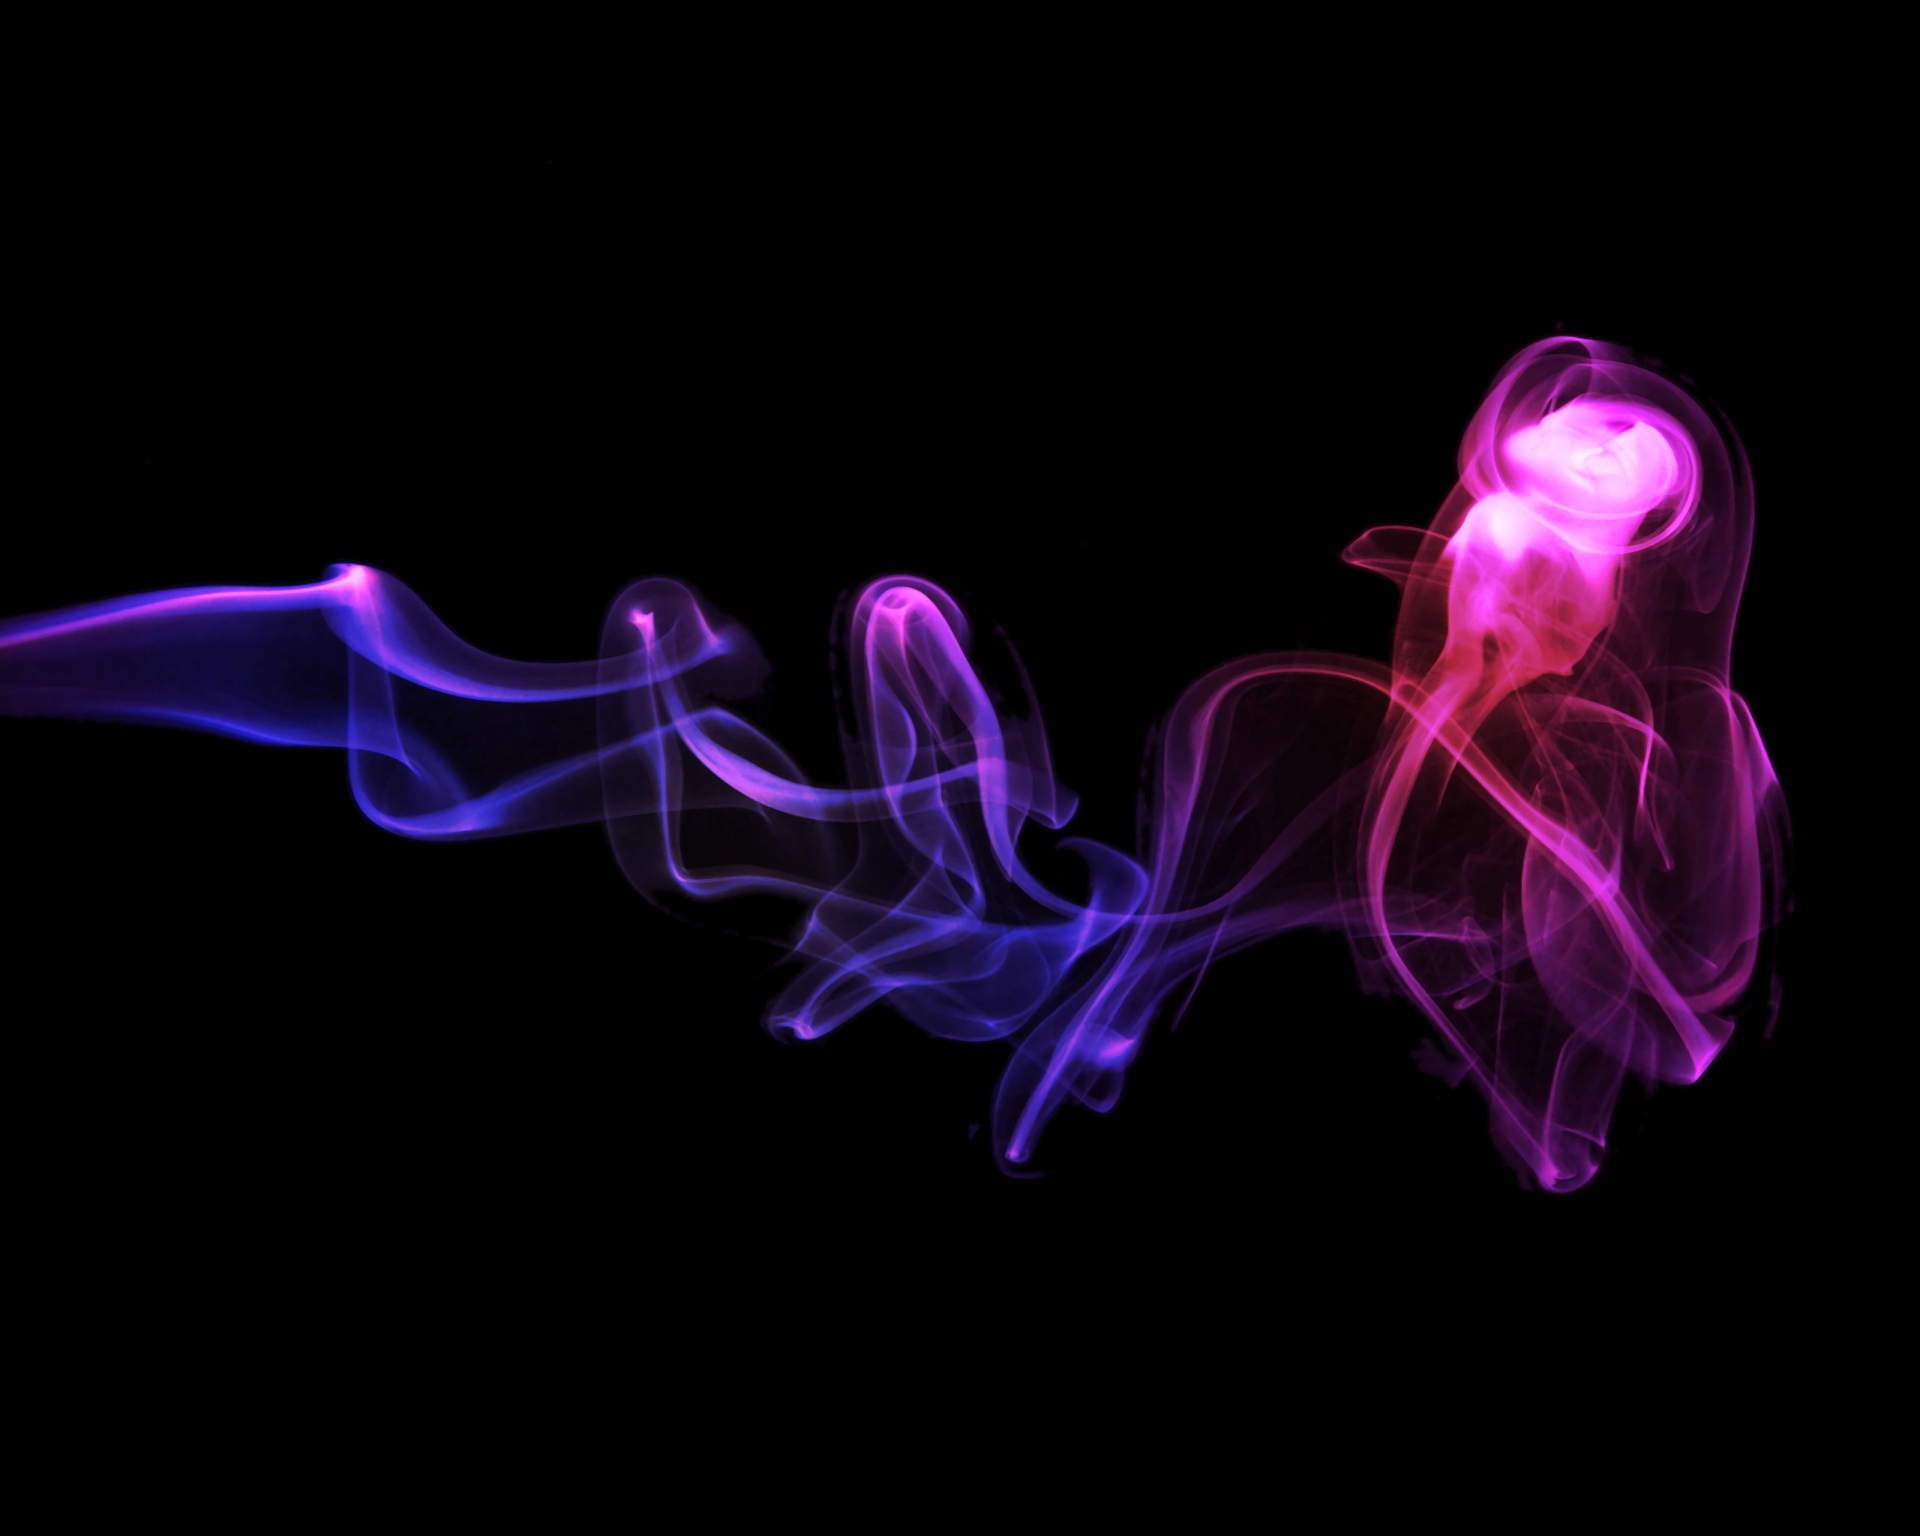 Astratto - Cool  - Color - Shades - Disegni - Texture - Shapes - Smoke - Astratto - Artistico Sfondi